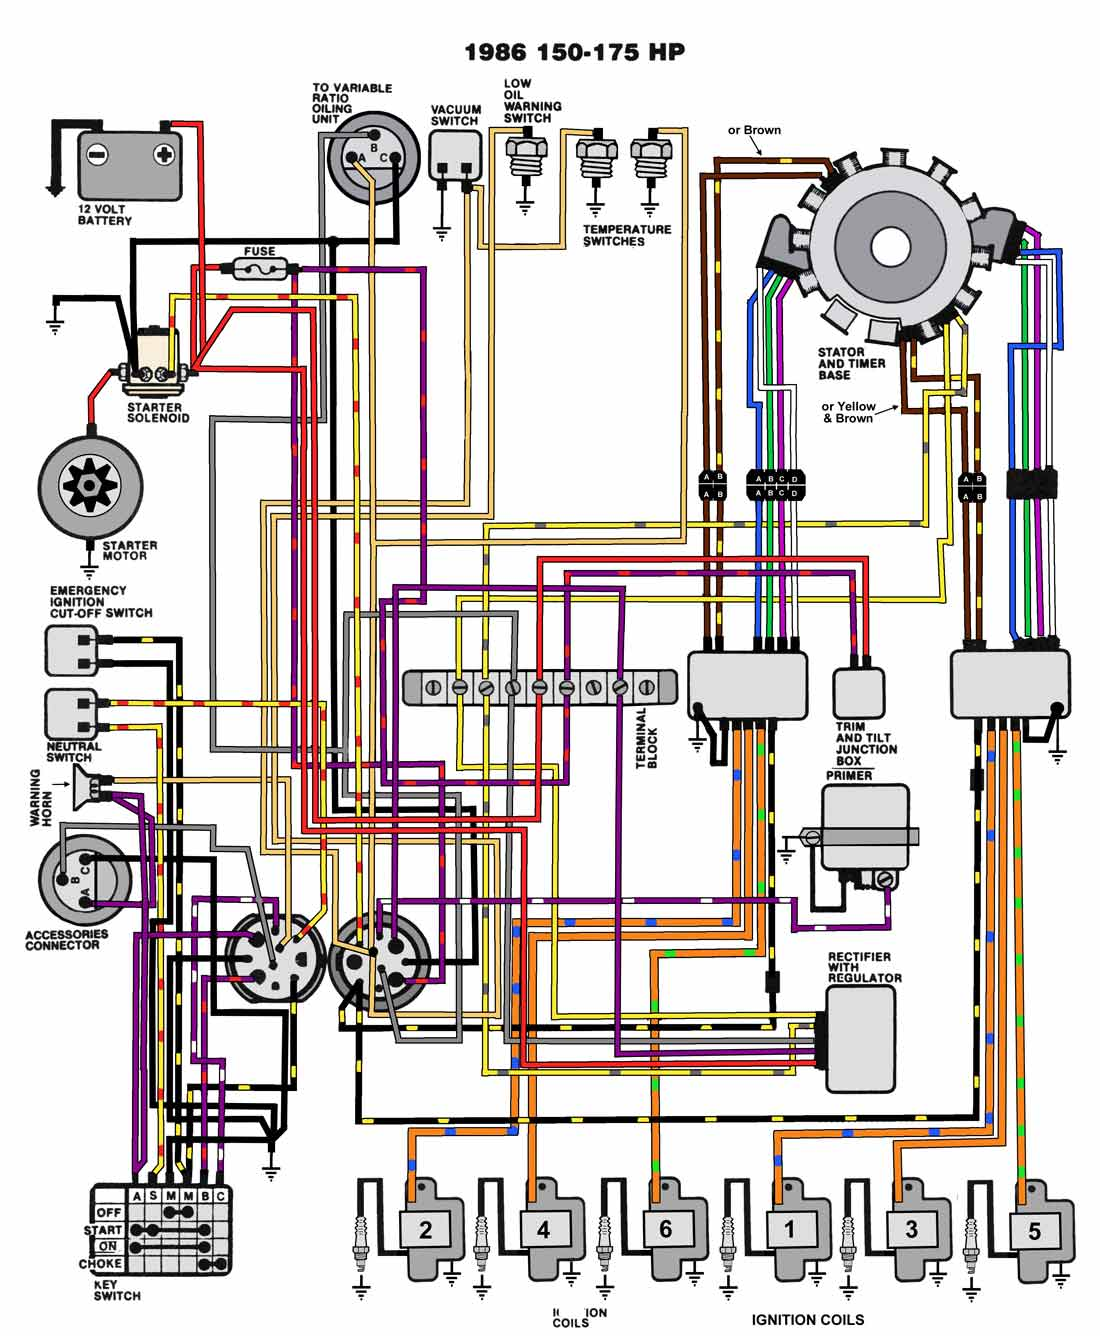 hight resolution of wiring diagram lg model ld450eal